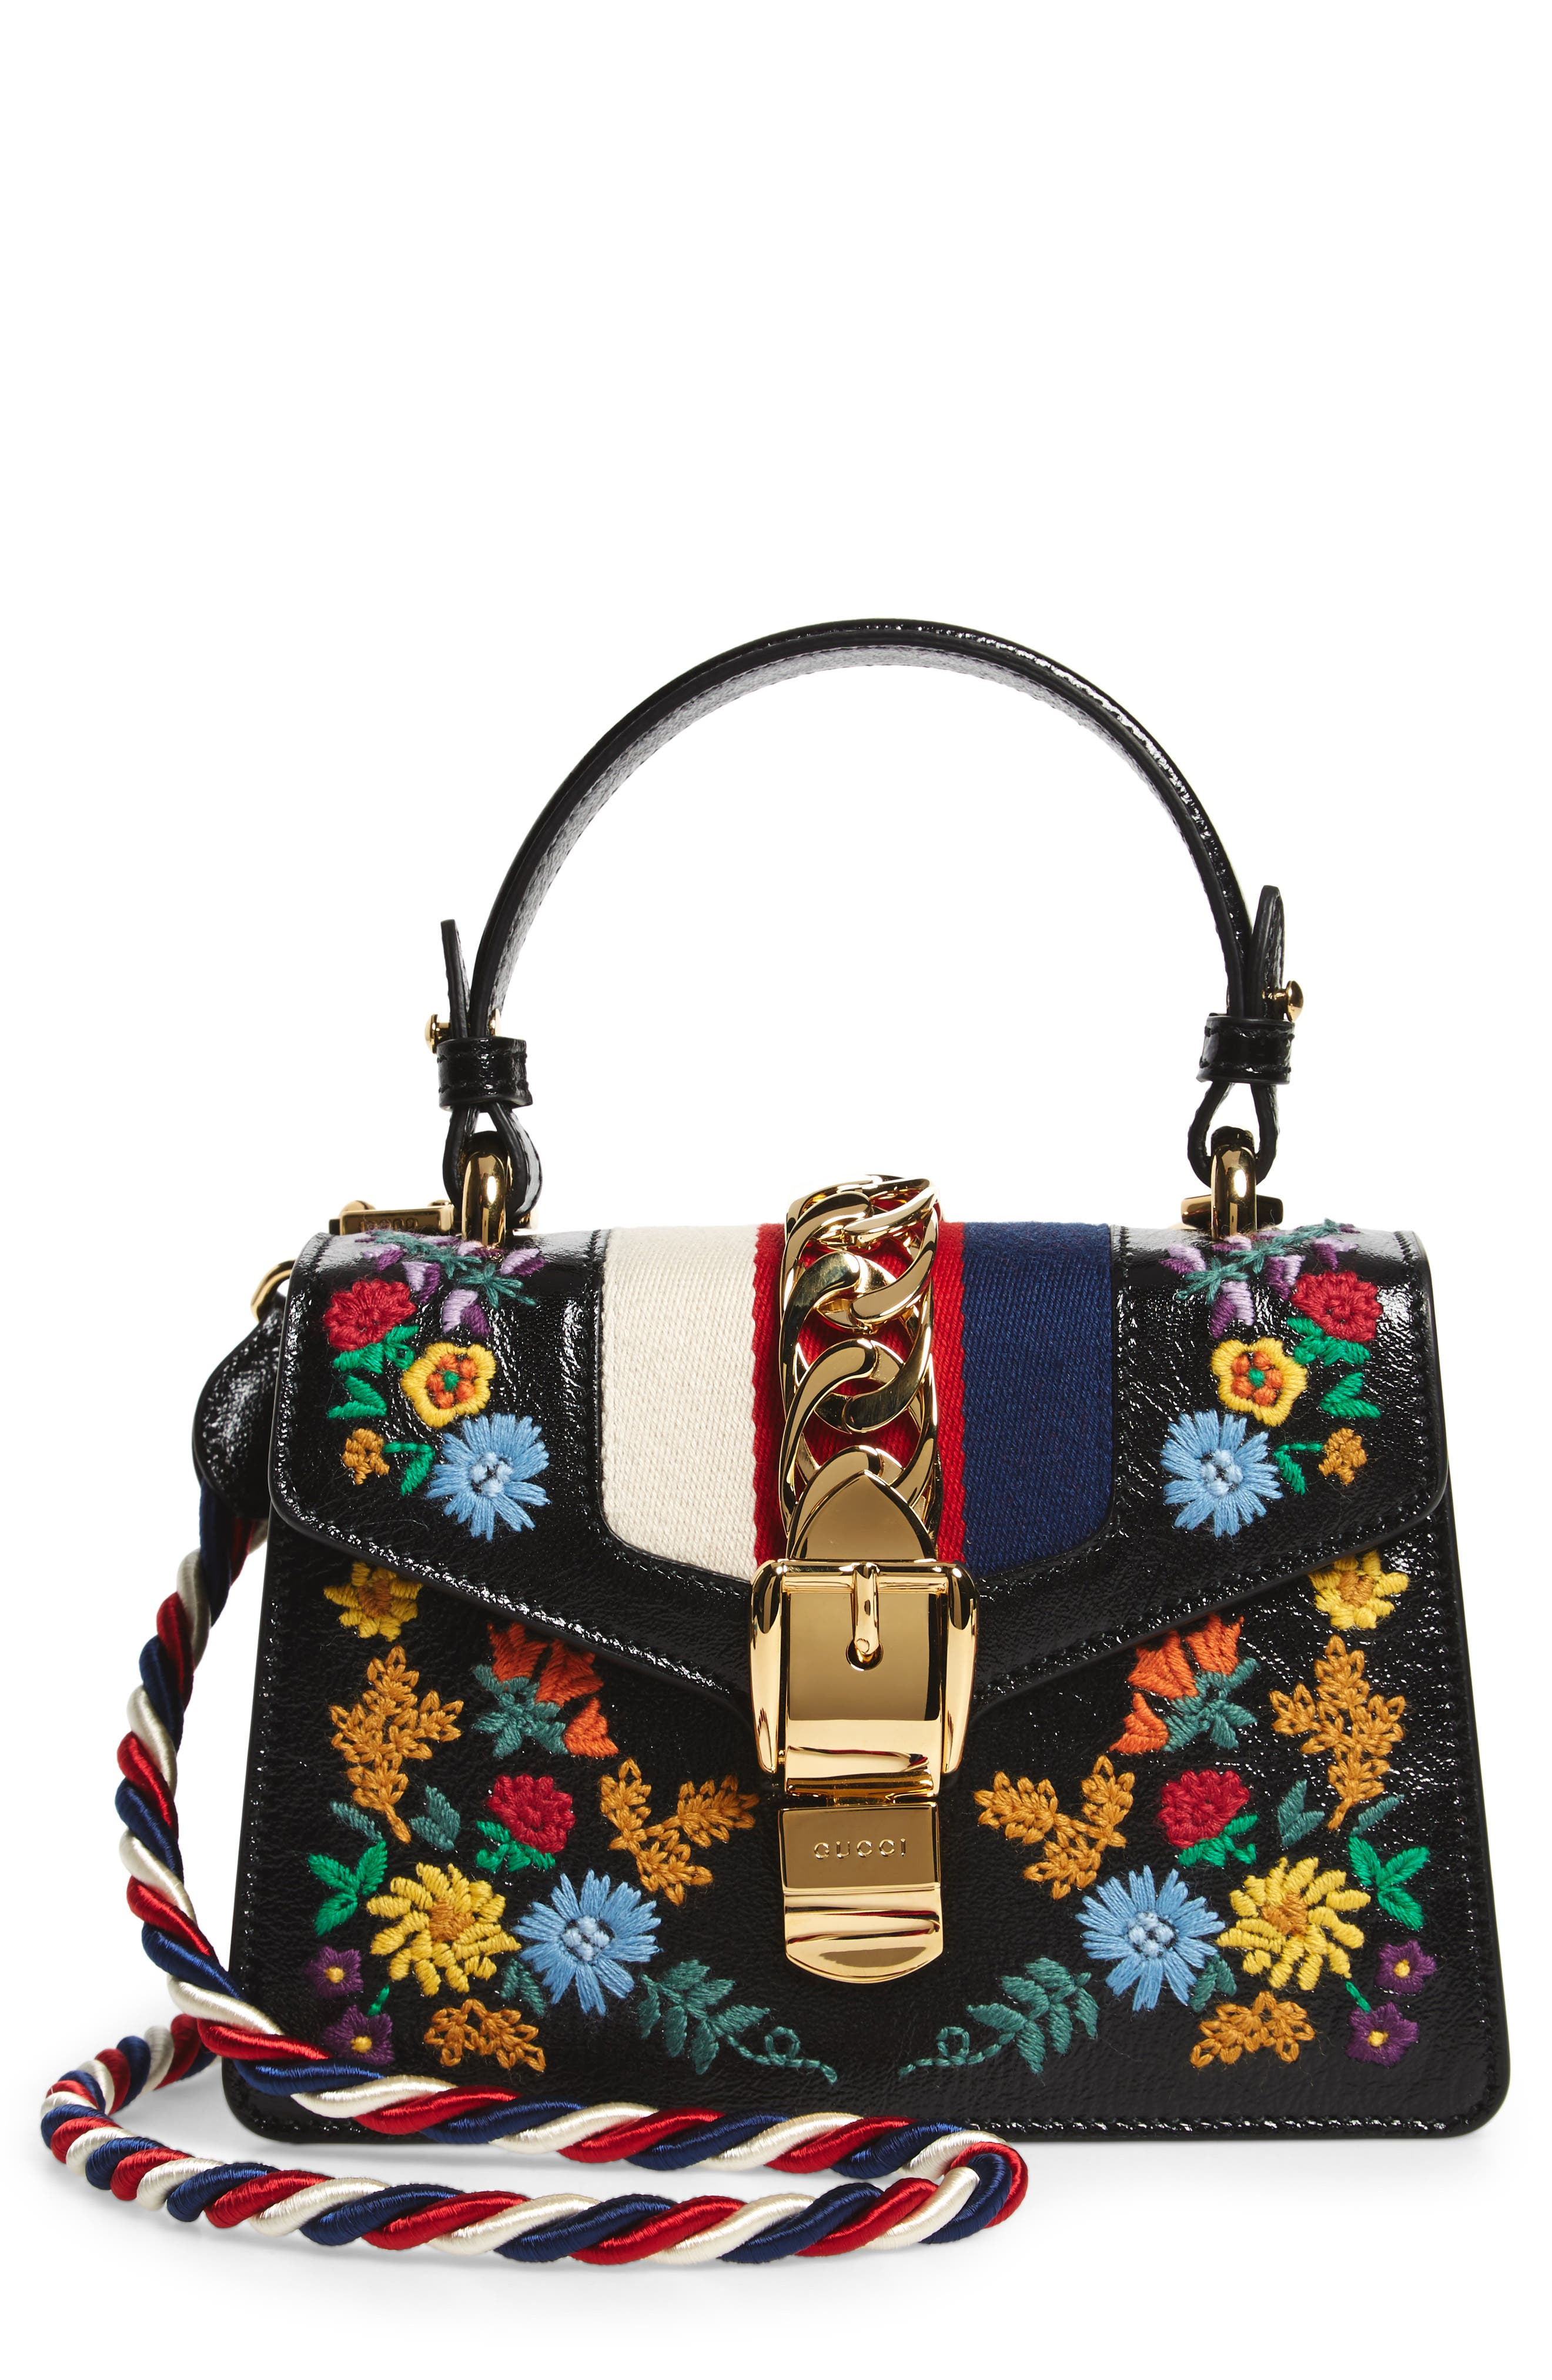 Mini Sylvie Flower Embroidery Leather Shoulder Bag,                             Main thumbnail 1, color,                             NERO MULTI